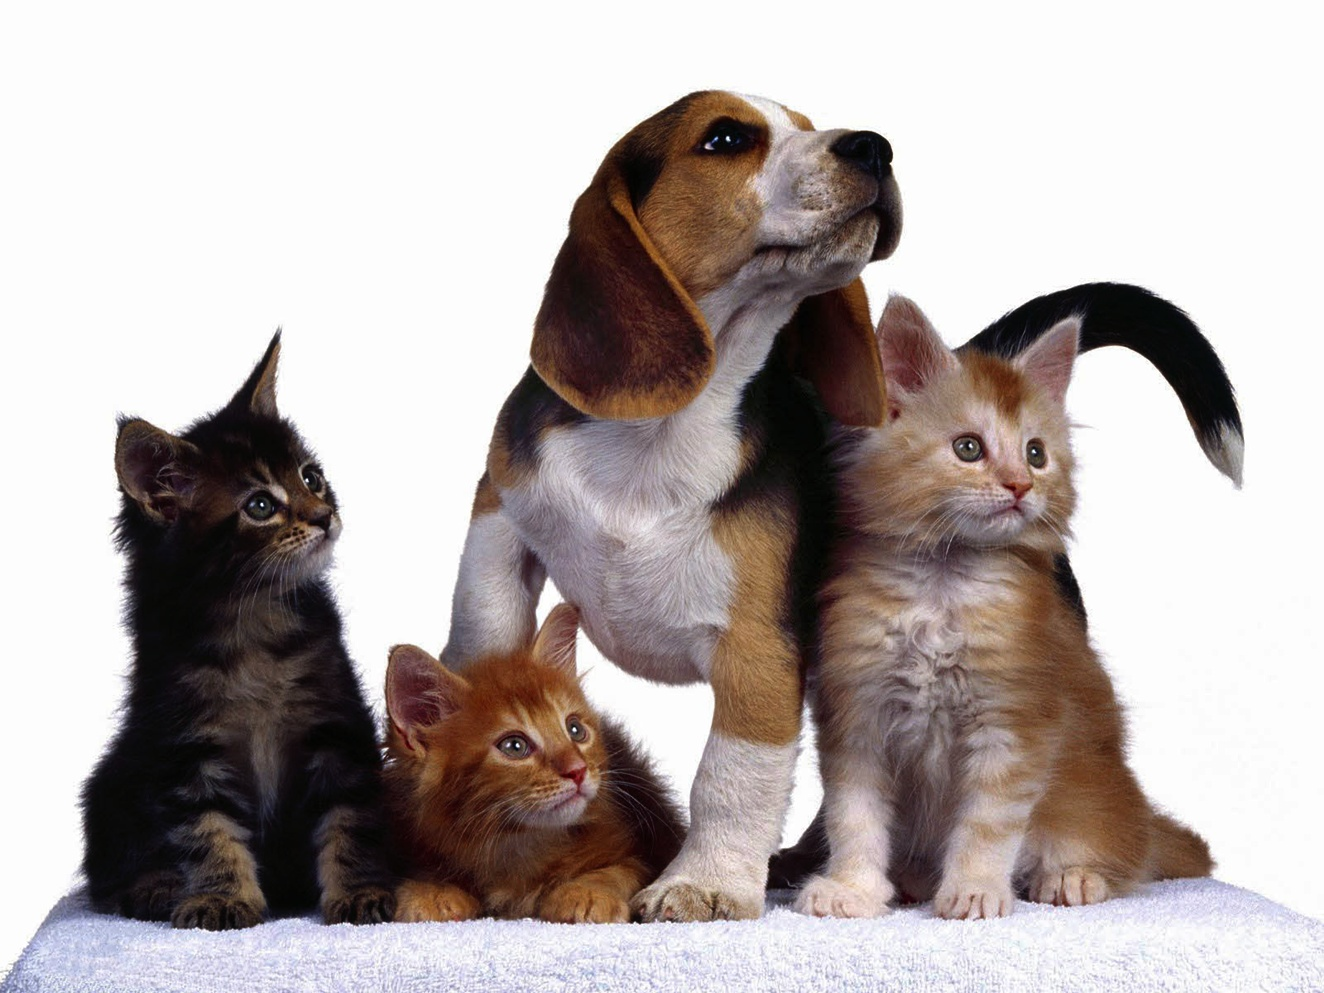 Dogs Cute Cats And Dogs X Photo Wallpaper Full HD Wallpapers 1324x993